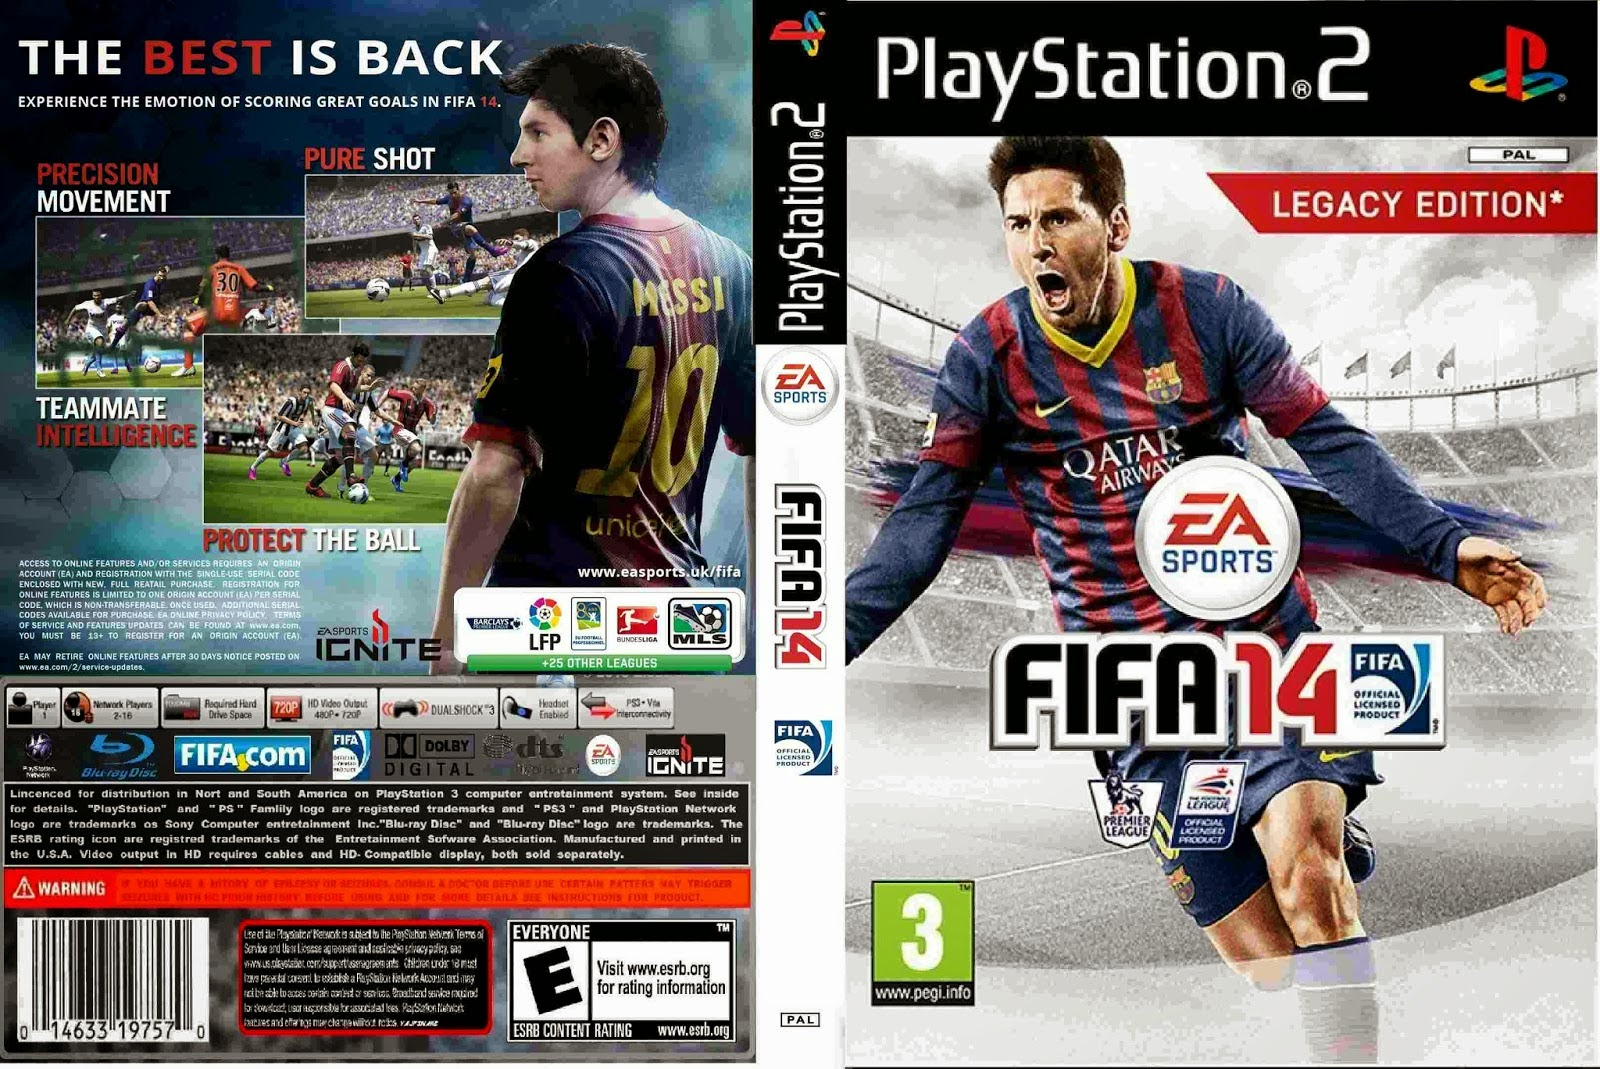 Fifa 14 patch fifa 16 + patch download youtube.